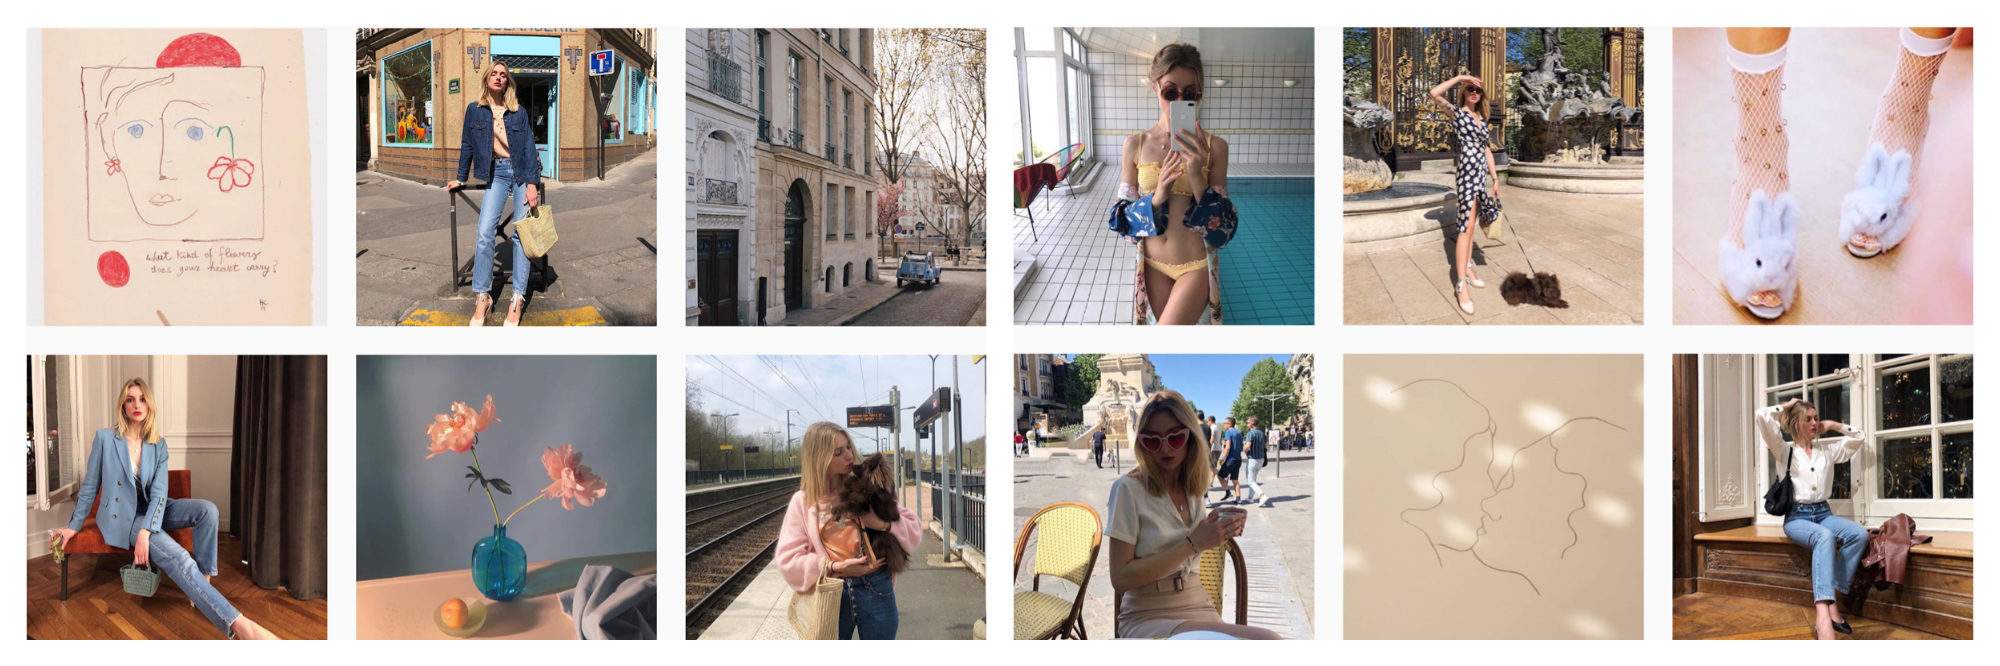 A selection of images of French Instagram fashion influencer Lucie Mahé.